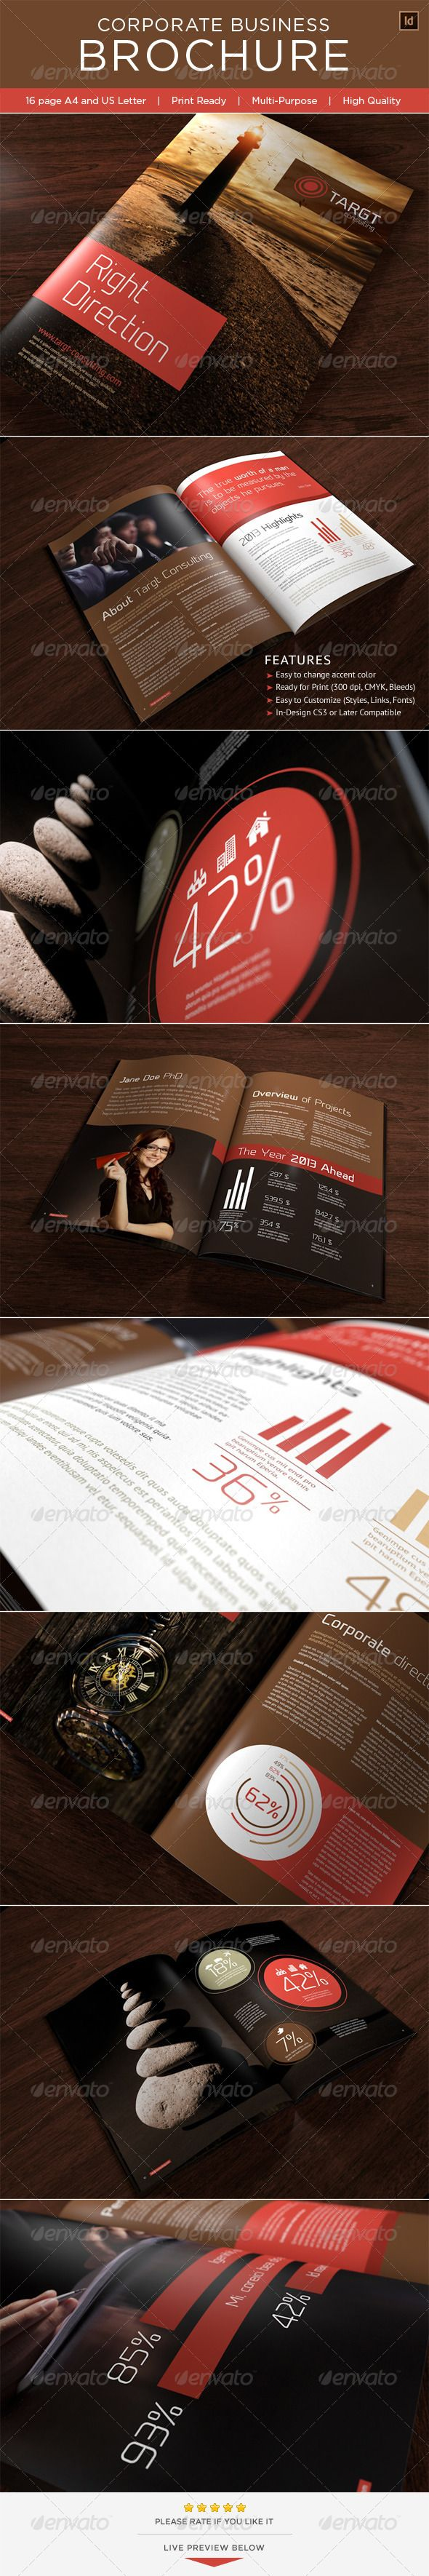 Professional InDesign Corporate Business Brochure Template • Only available here ➝ http://graphicriver.net/item/corporate-business-brochure/3551142?ref=pxcr